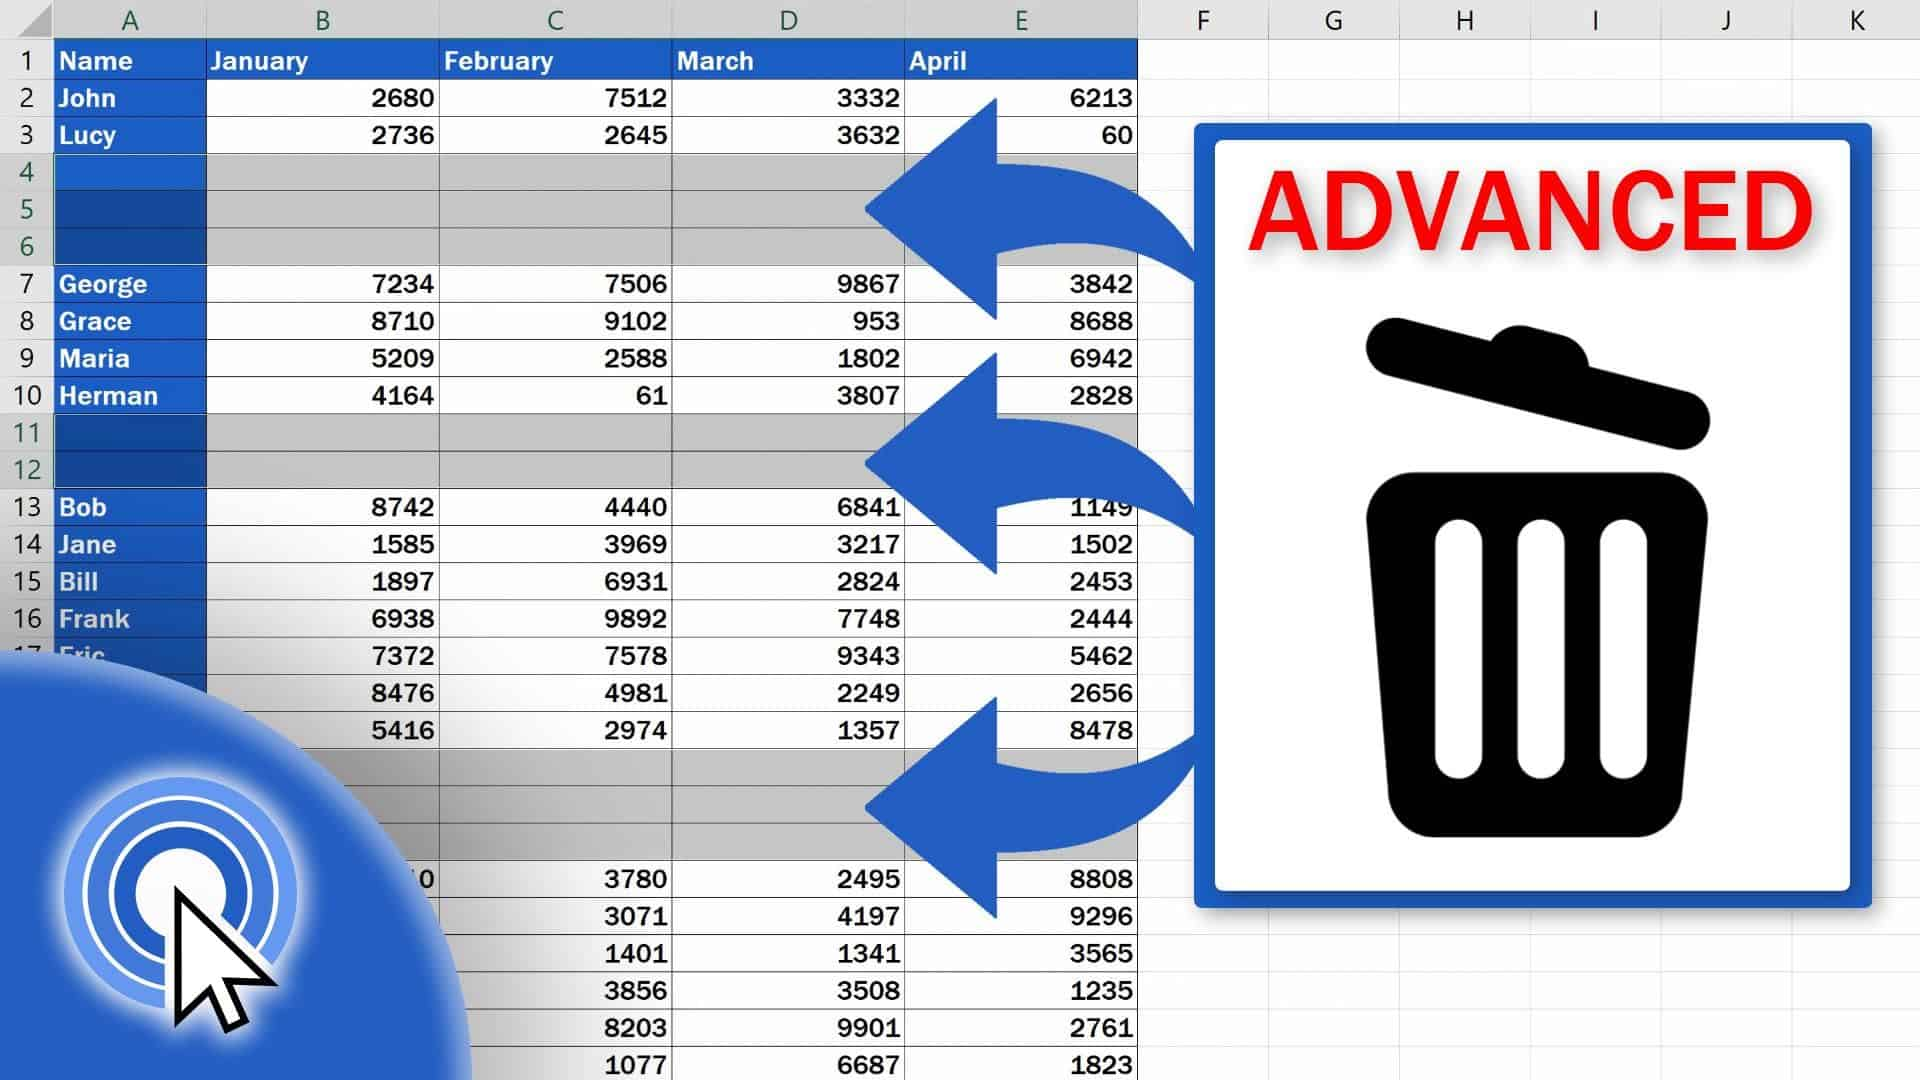 How to Remove Blank Rows in Excel - ADVANCE